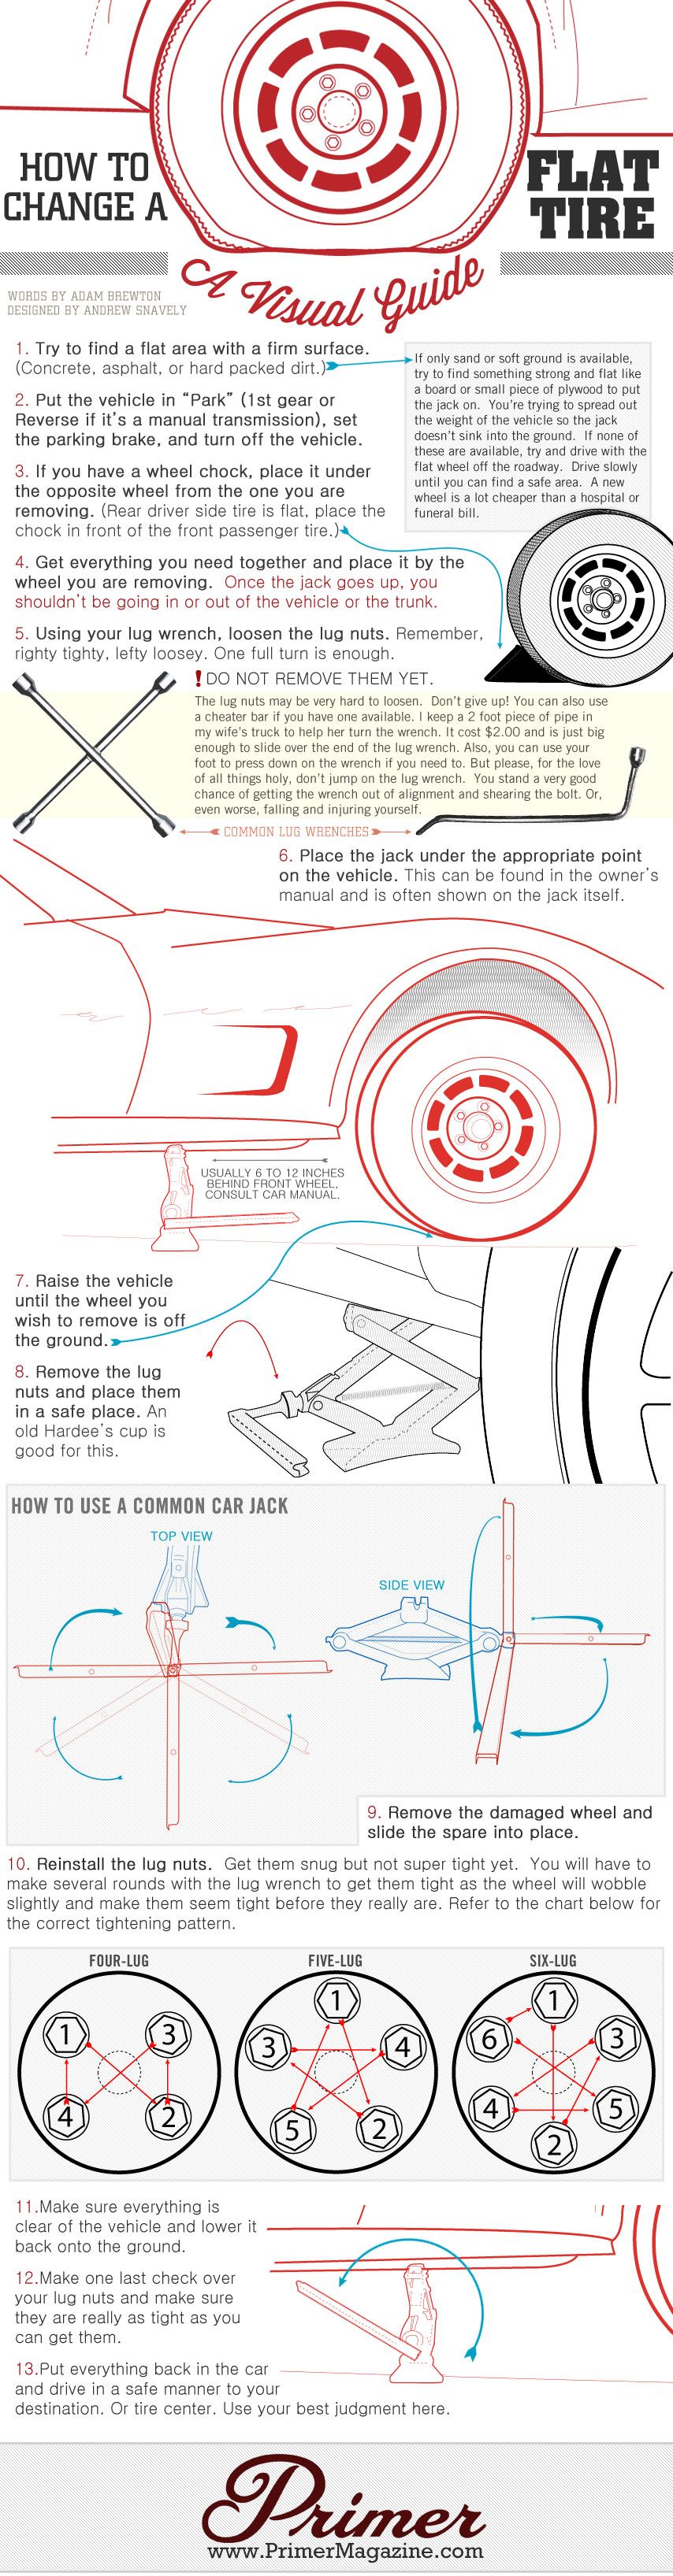 How to Change a Flat Tire Infographic Visual Guide